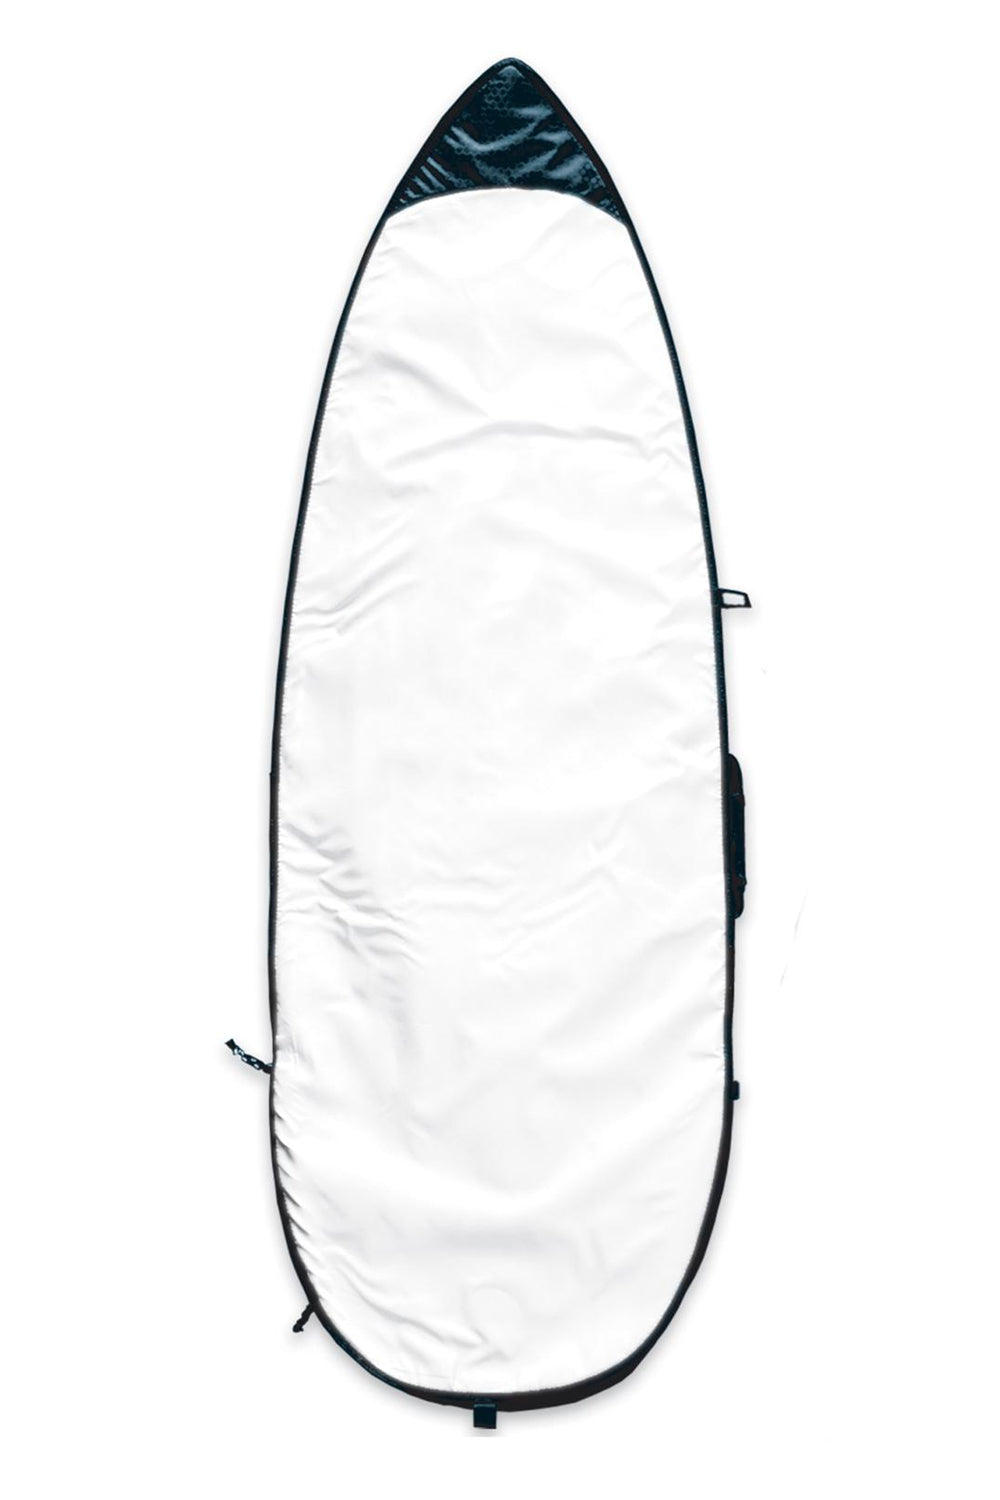 Channel Islands Feather Lite Shortboard Bag